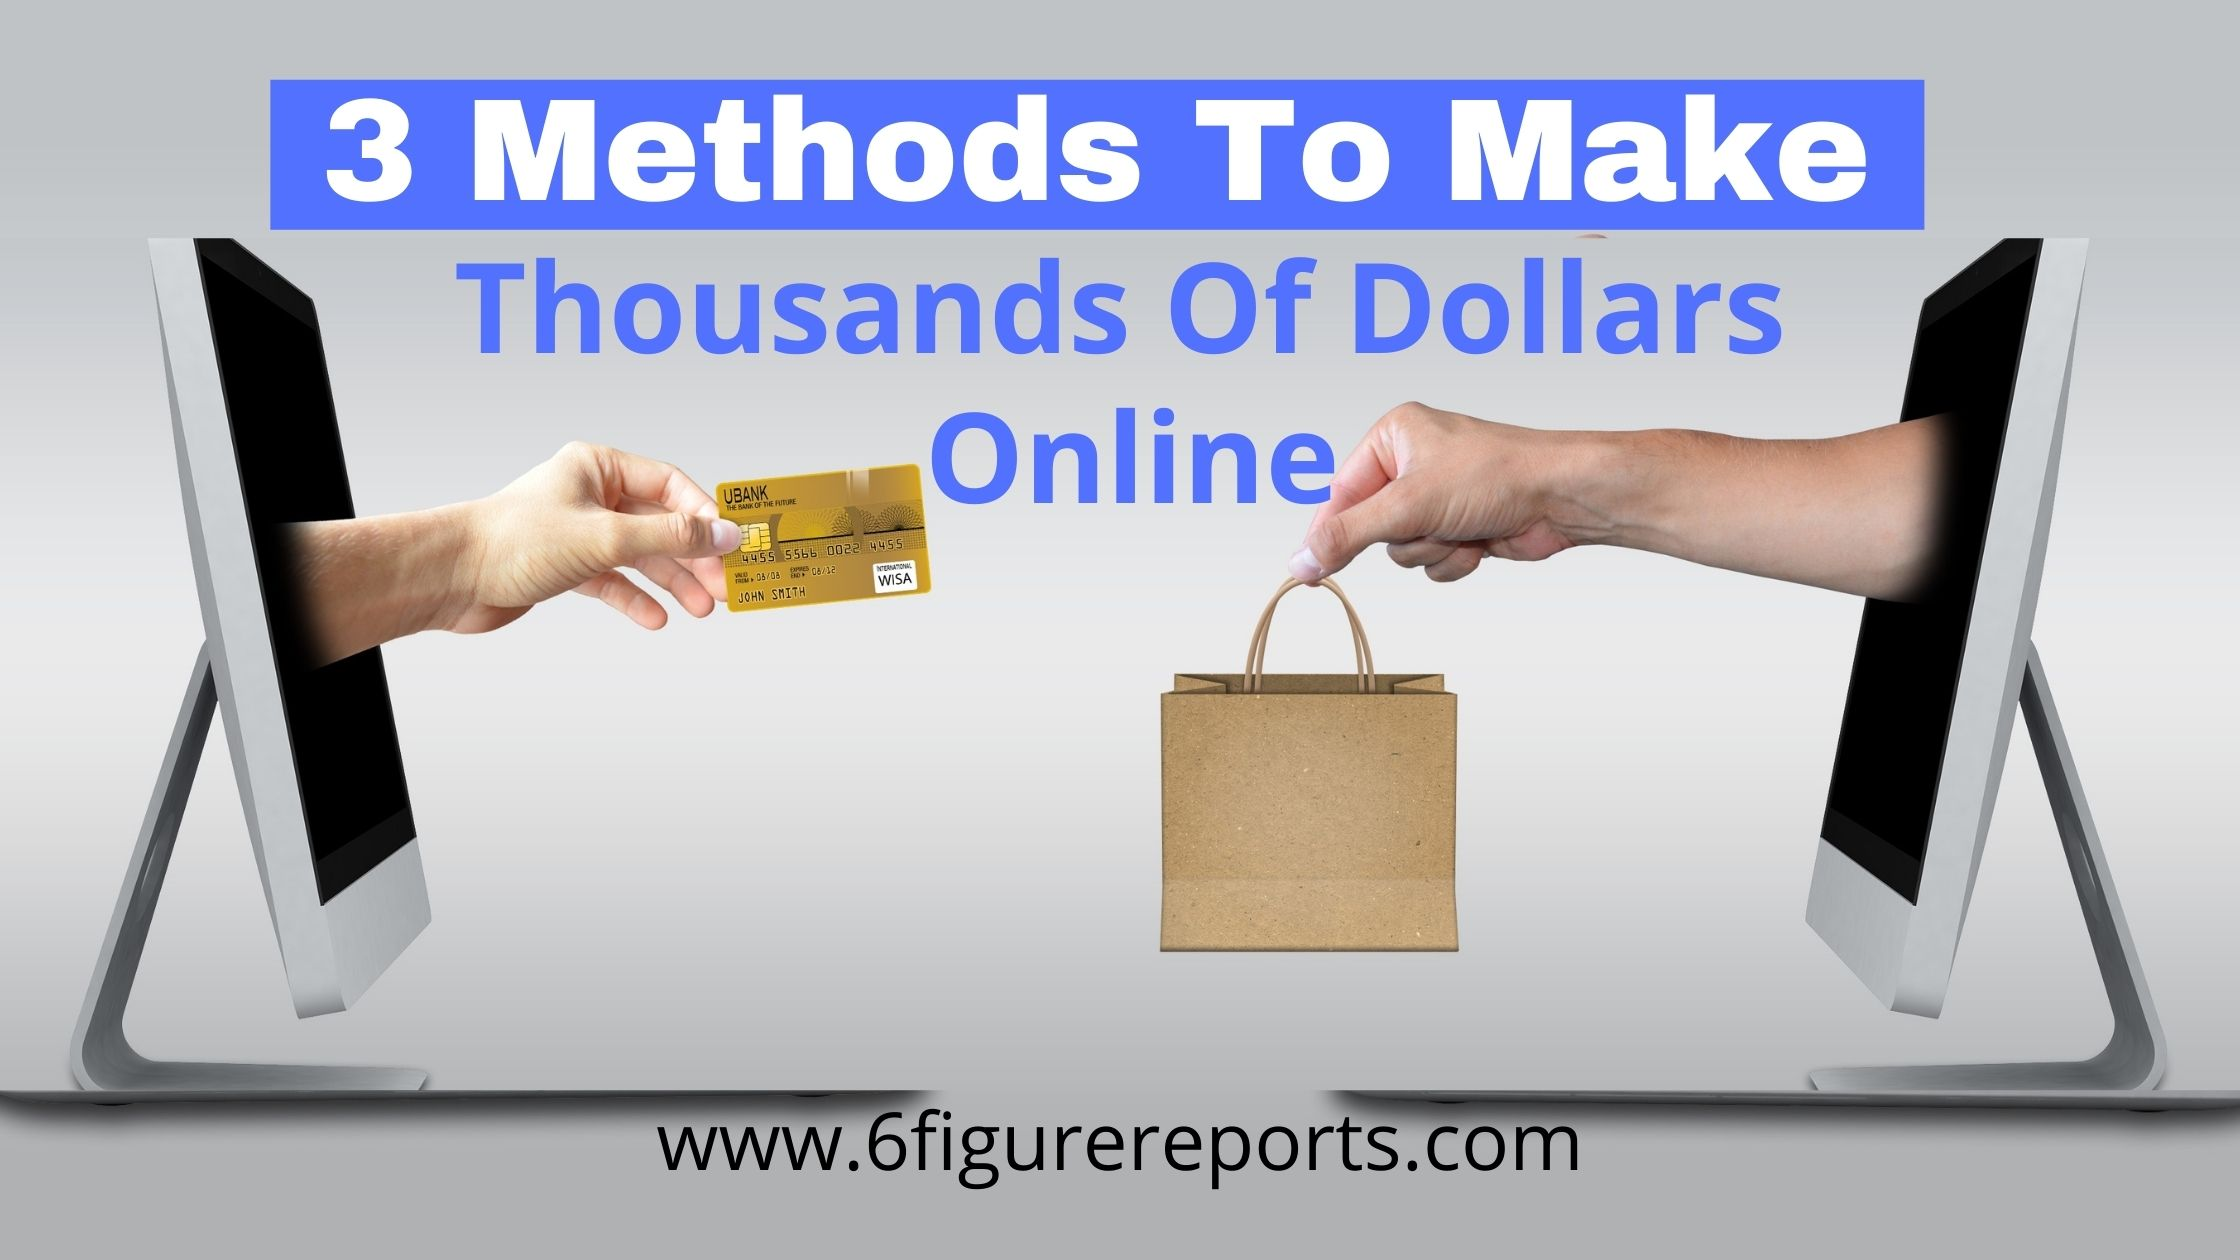 3 Methods To Make Thousands Of Dollars Online